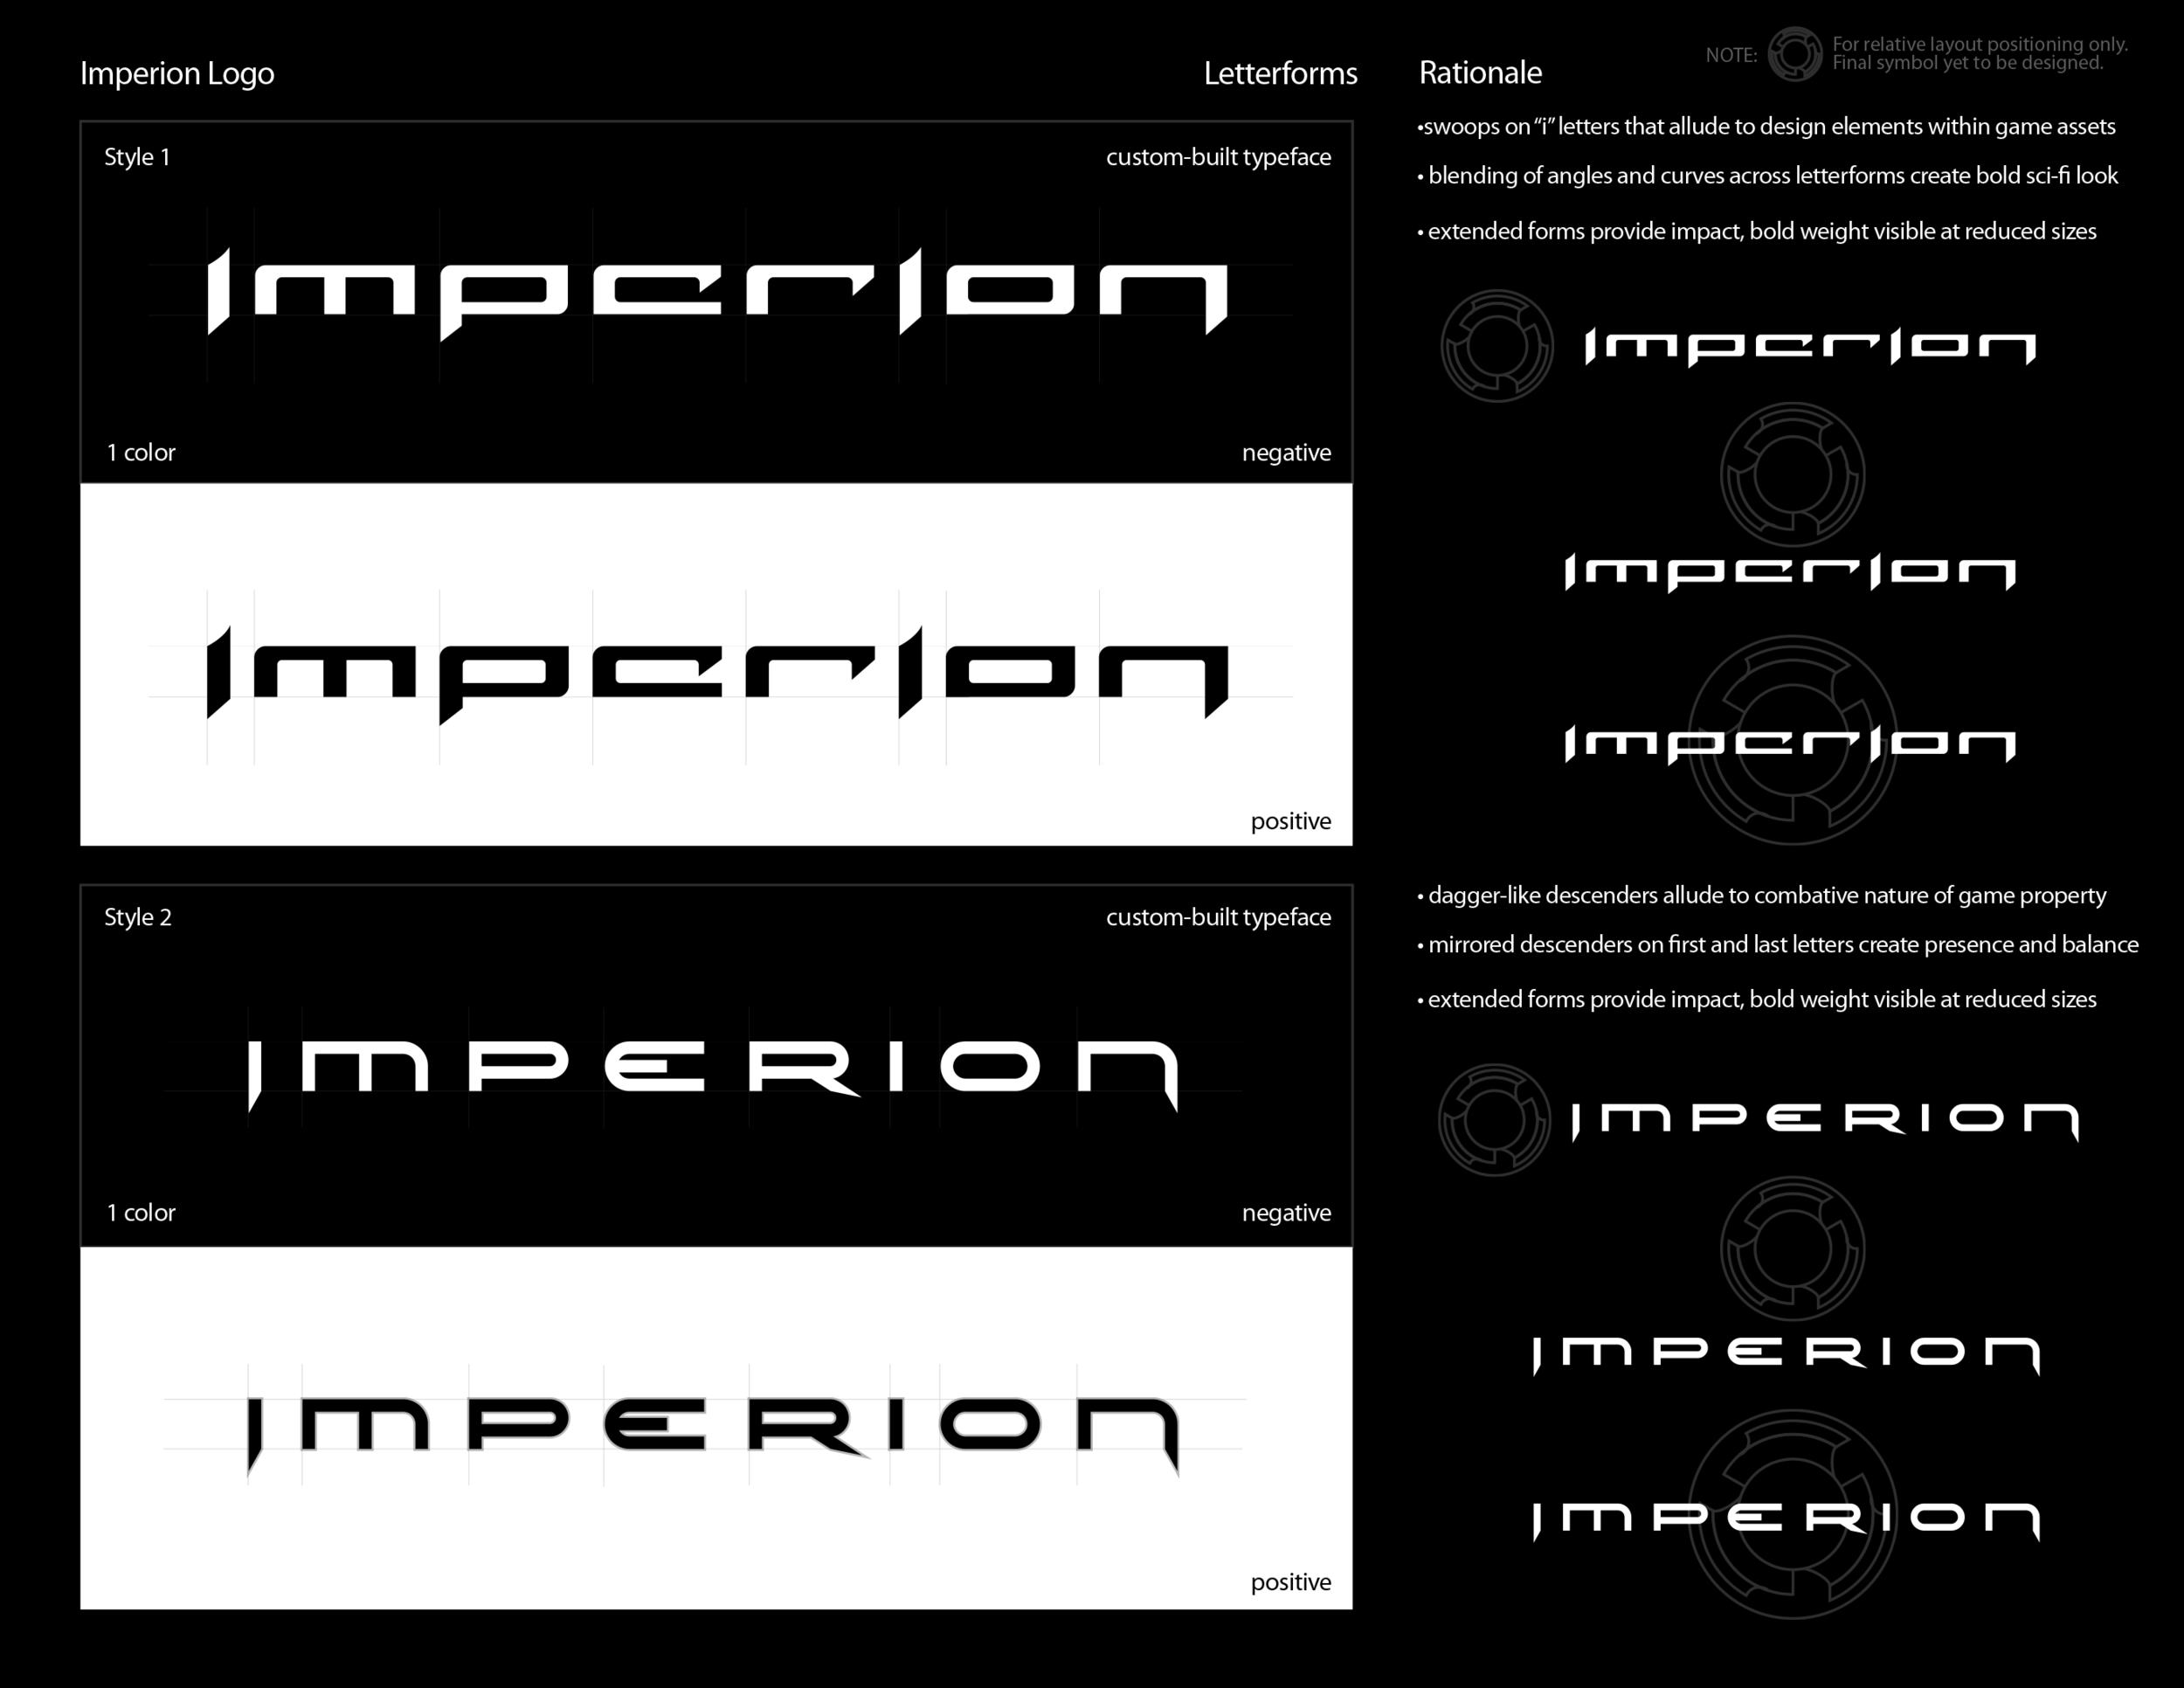 TSF_imperion_logotype-1.png